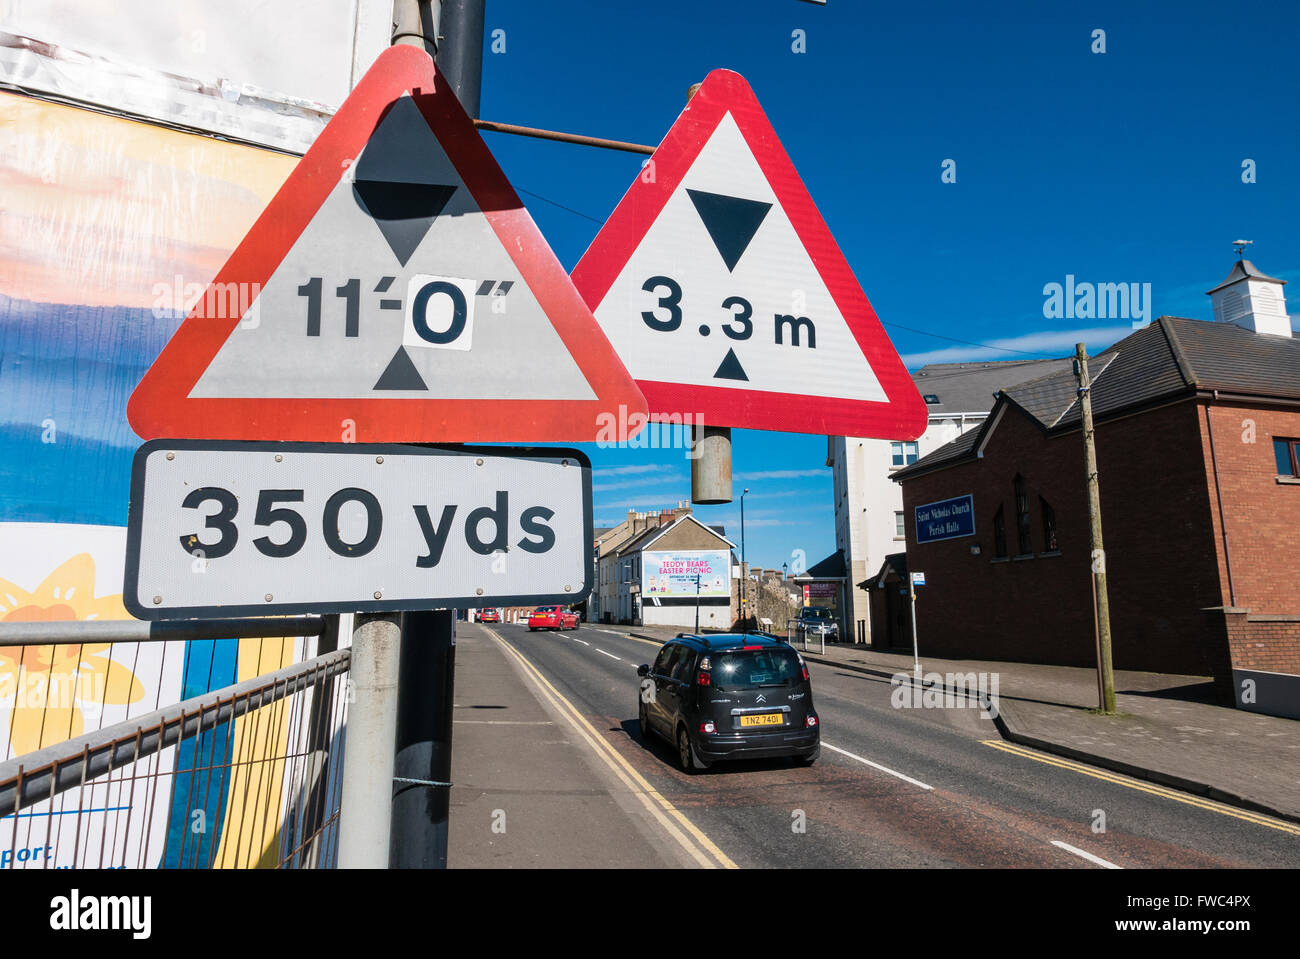 Road sign showing a changed height for an upcoming road bridge, with a new metric sign. - Stock Image